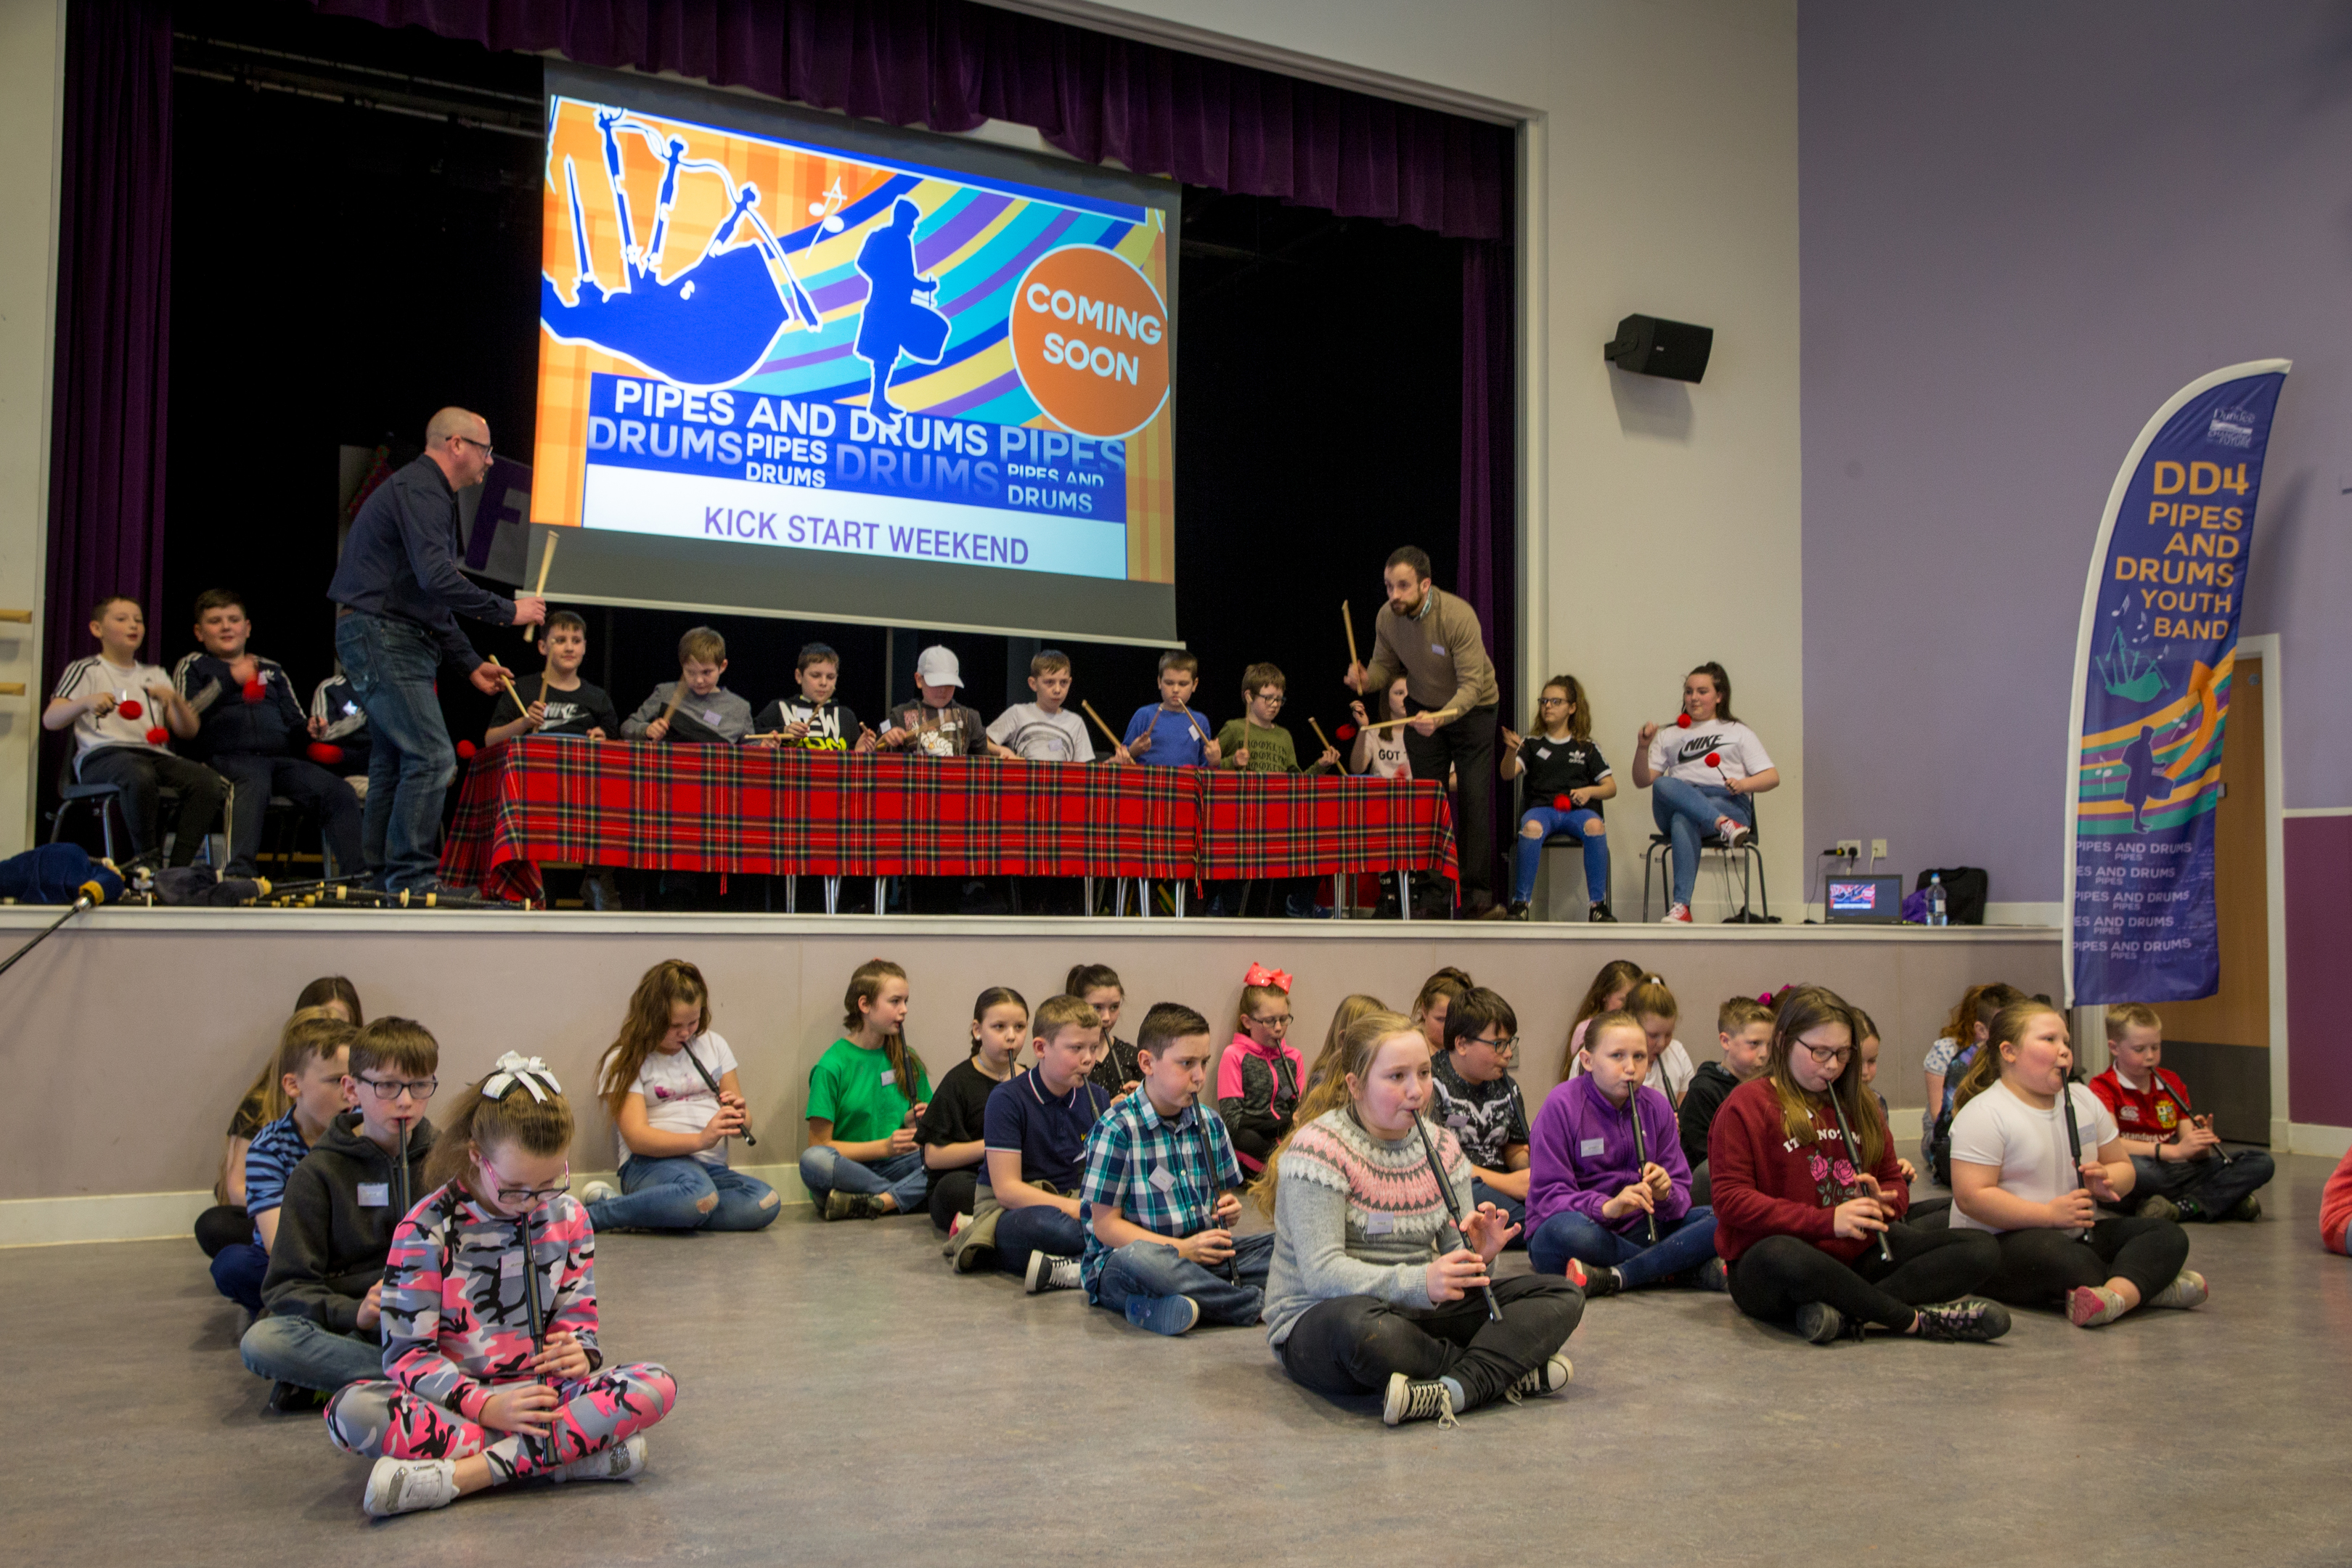 The kick start weekend took place at Fintry primary school.